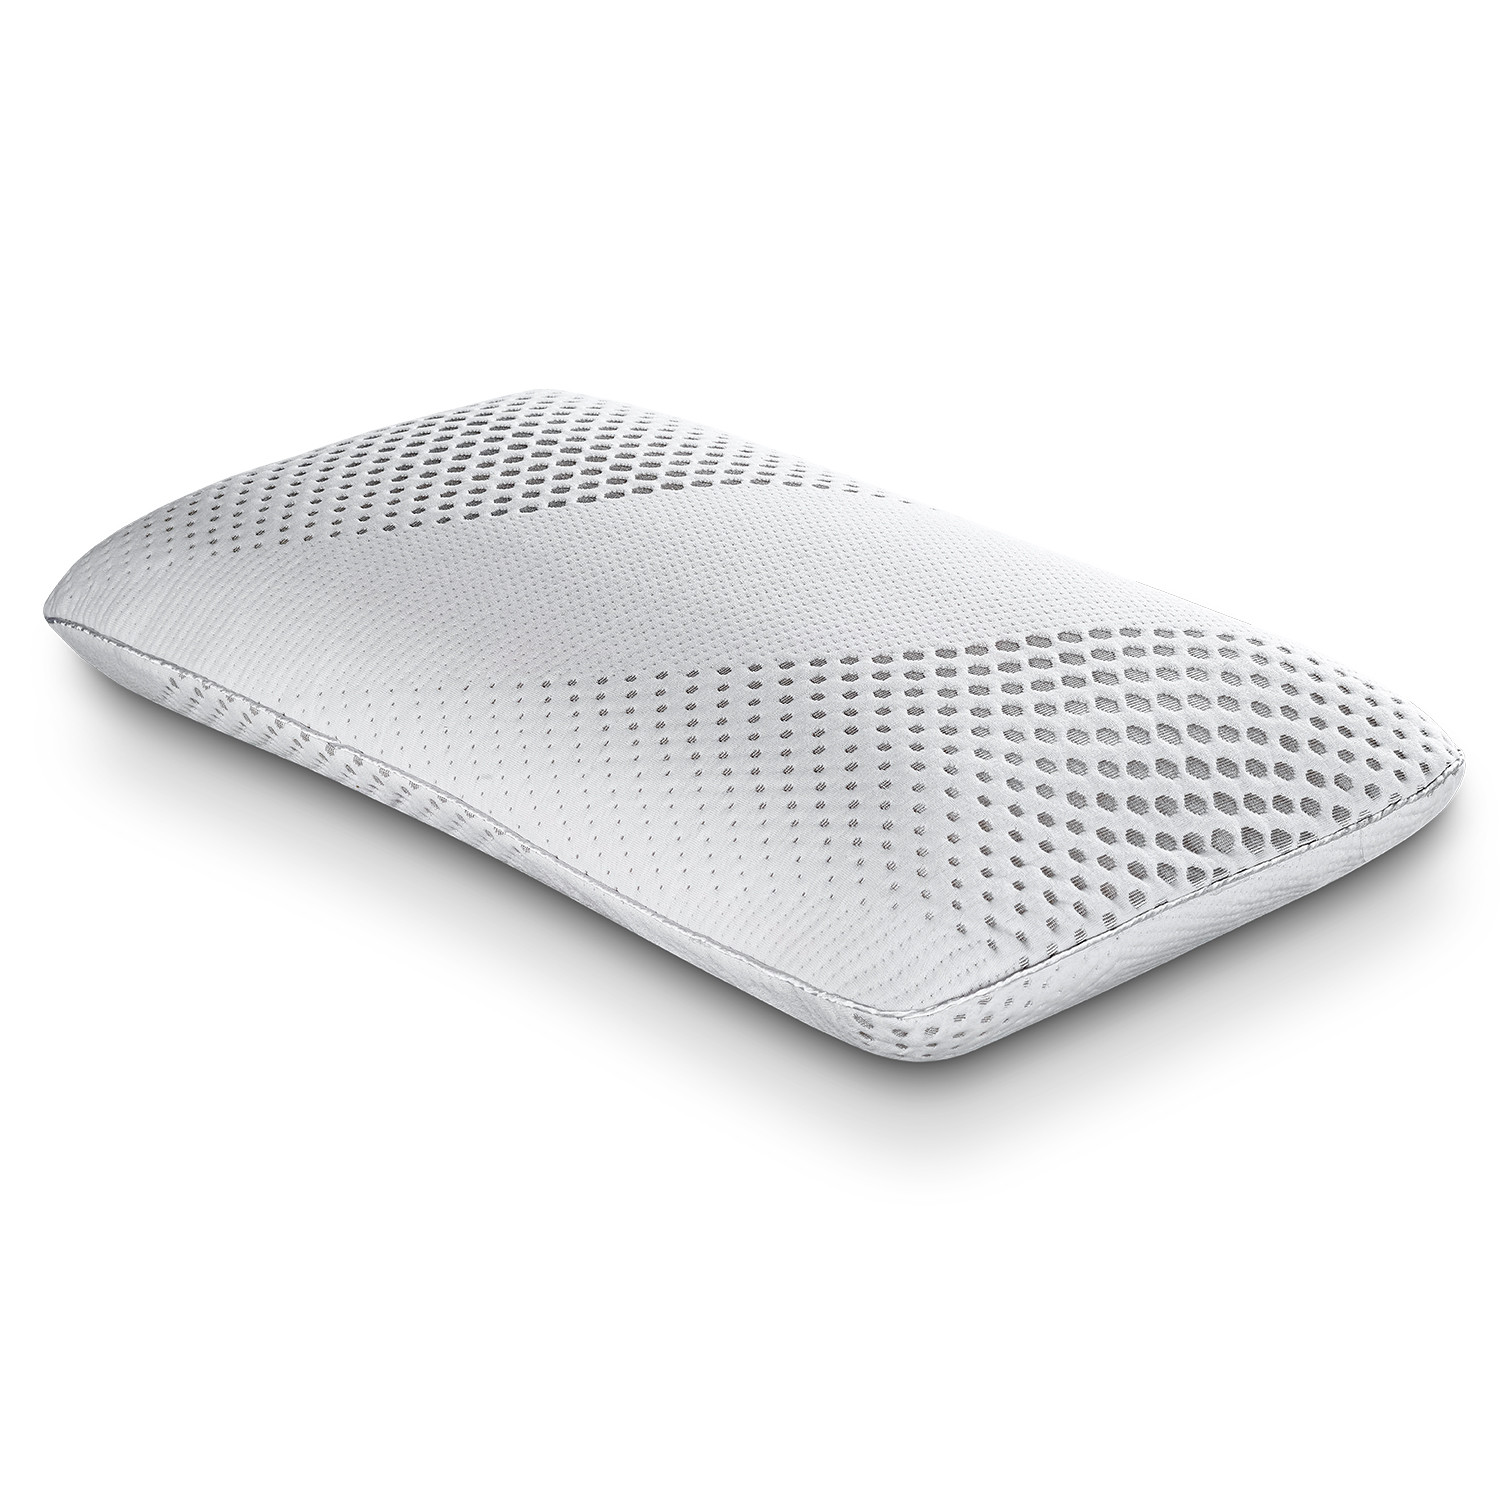 Modern Sleep Talalay Latex Pillow : Body Chemistry // Latex Pillow (Queen) - PureCare - Touch of Modern